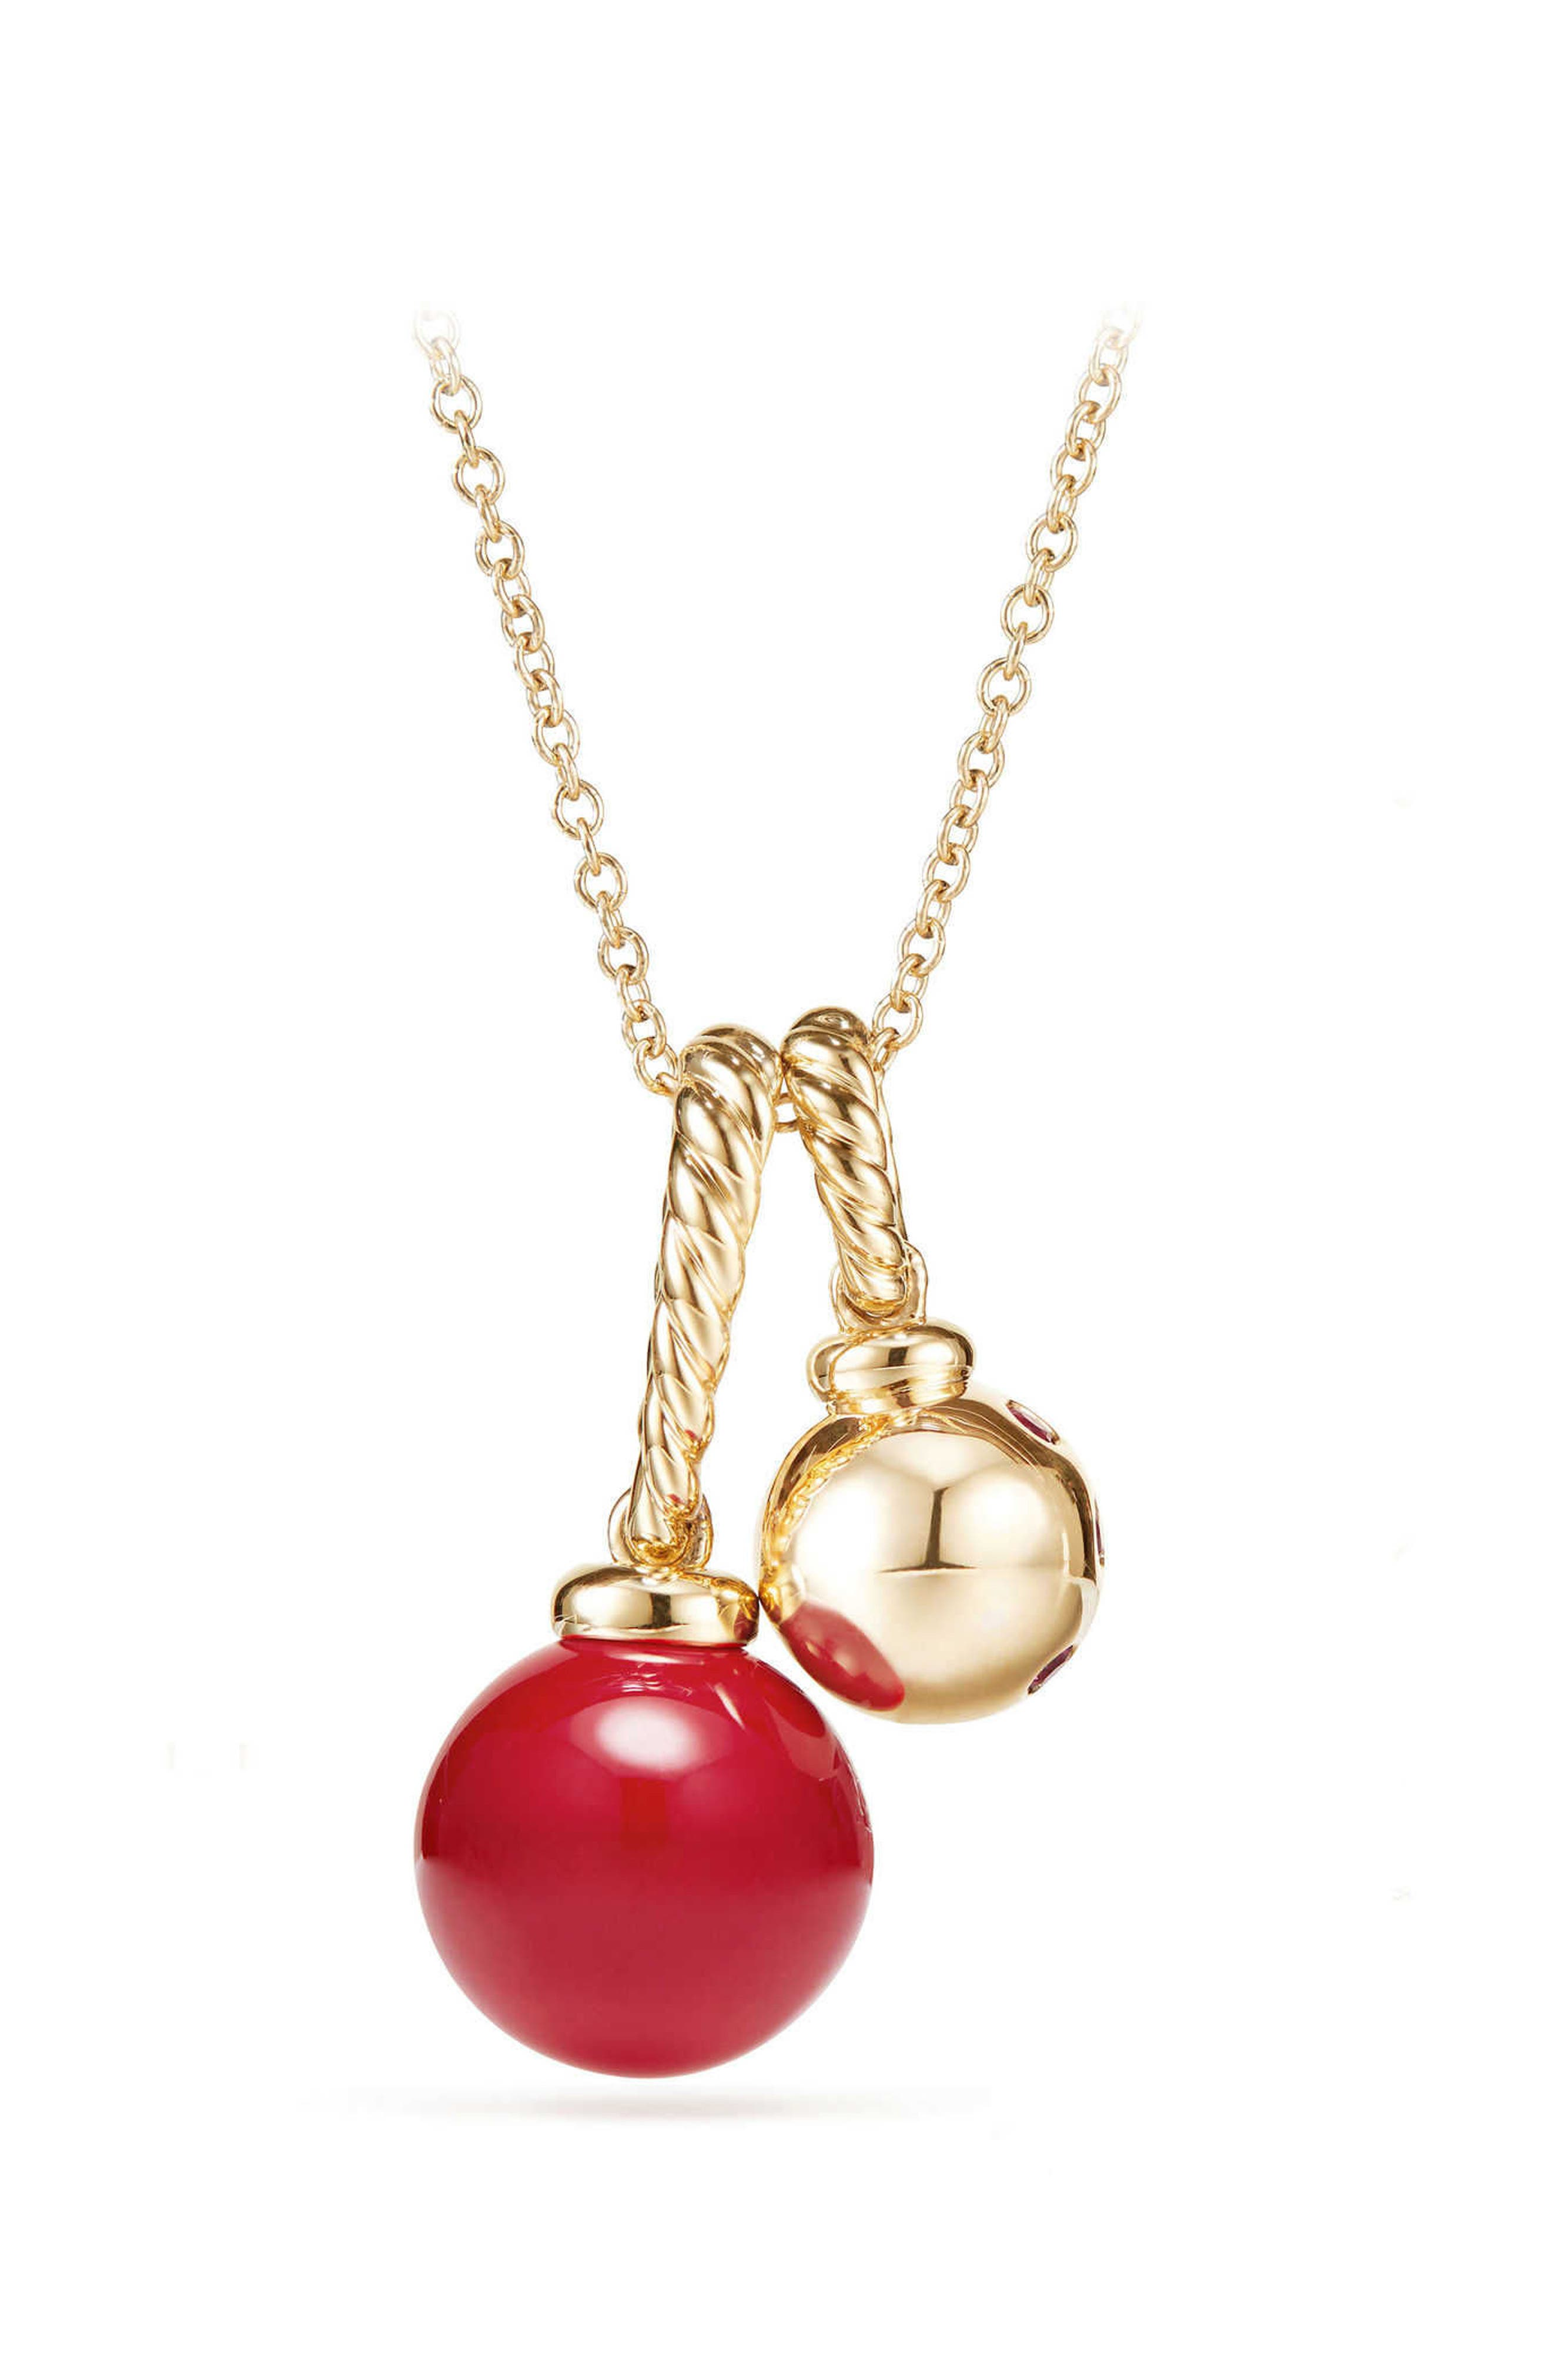 David Yurman Solari Pendant Necklace in 18K Gold with Cherry Amber